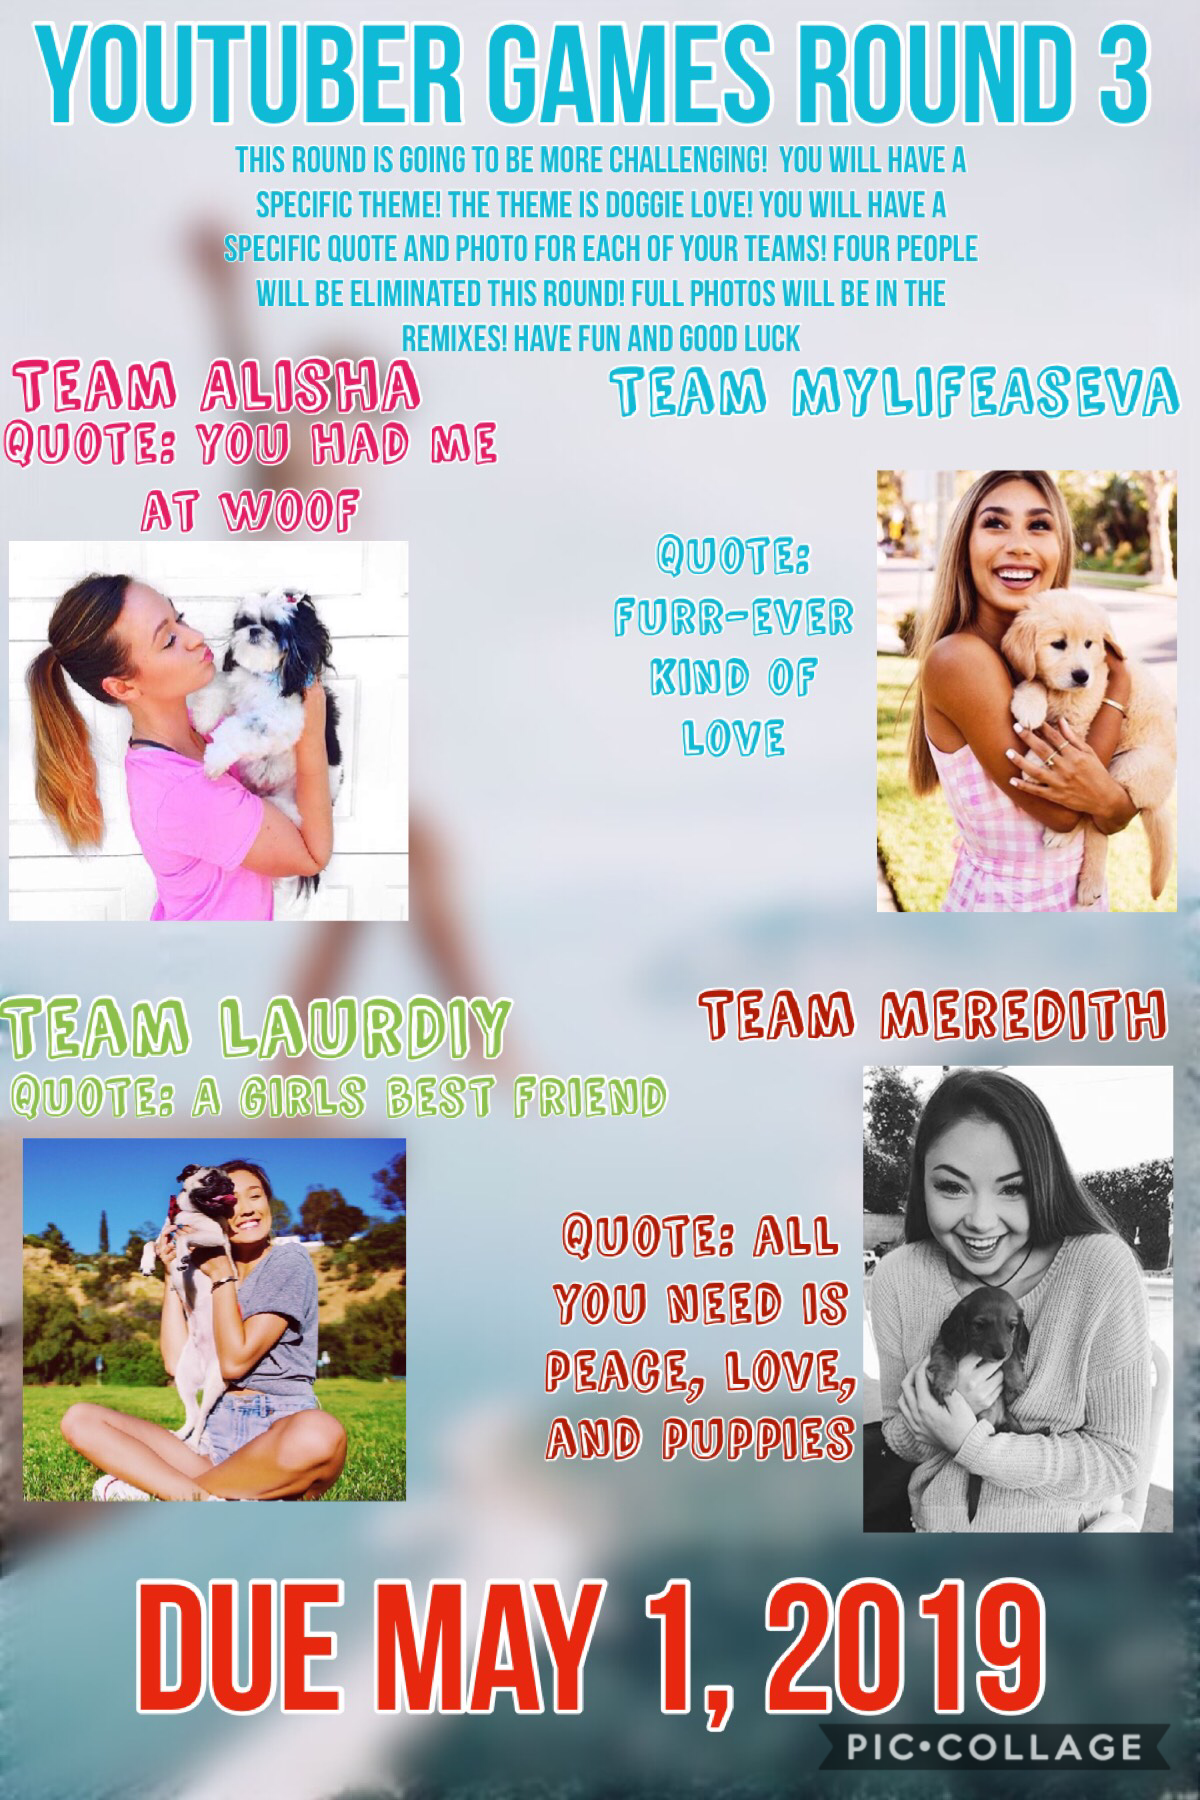 YouTuber Games Round 3! Good Luck! Full photo will be in the remixes! DUE MAY 1!💓🌟